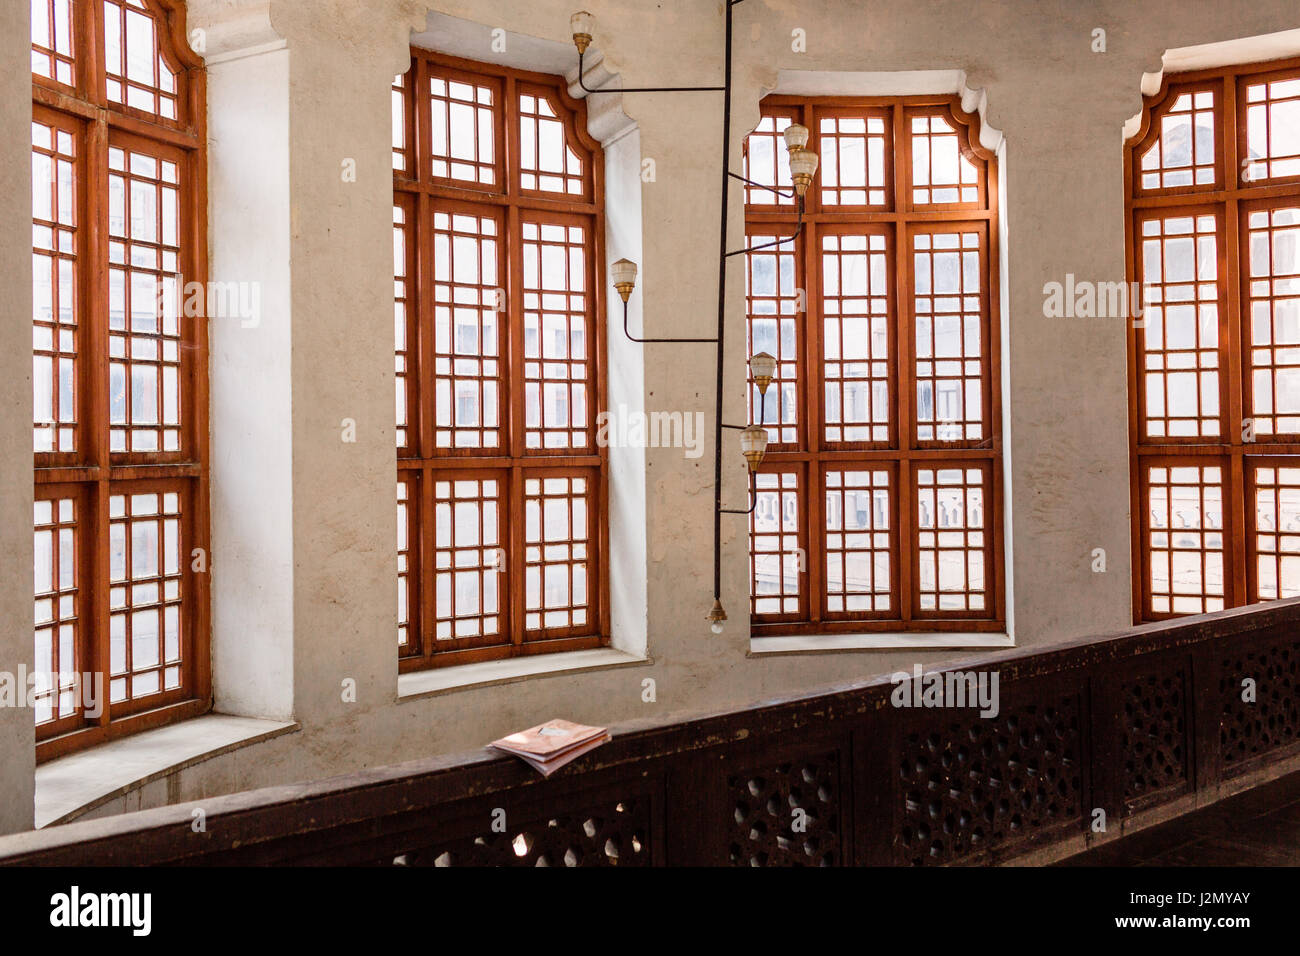 Large Bay Windows with Glass - Stock Image